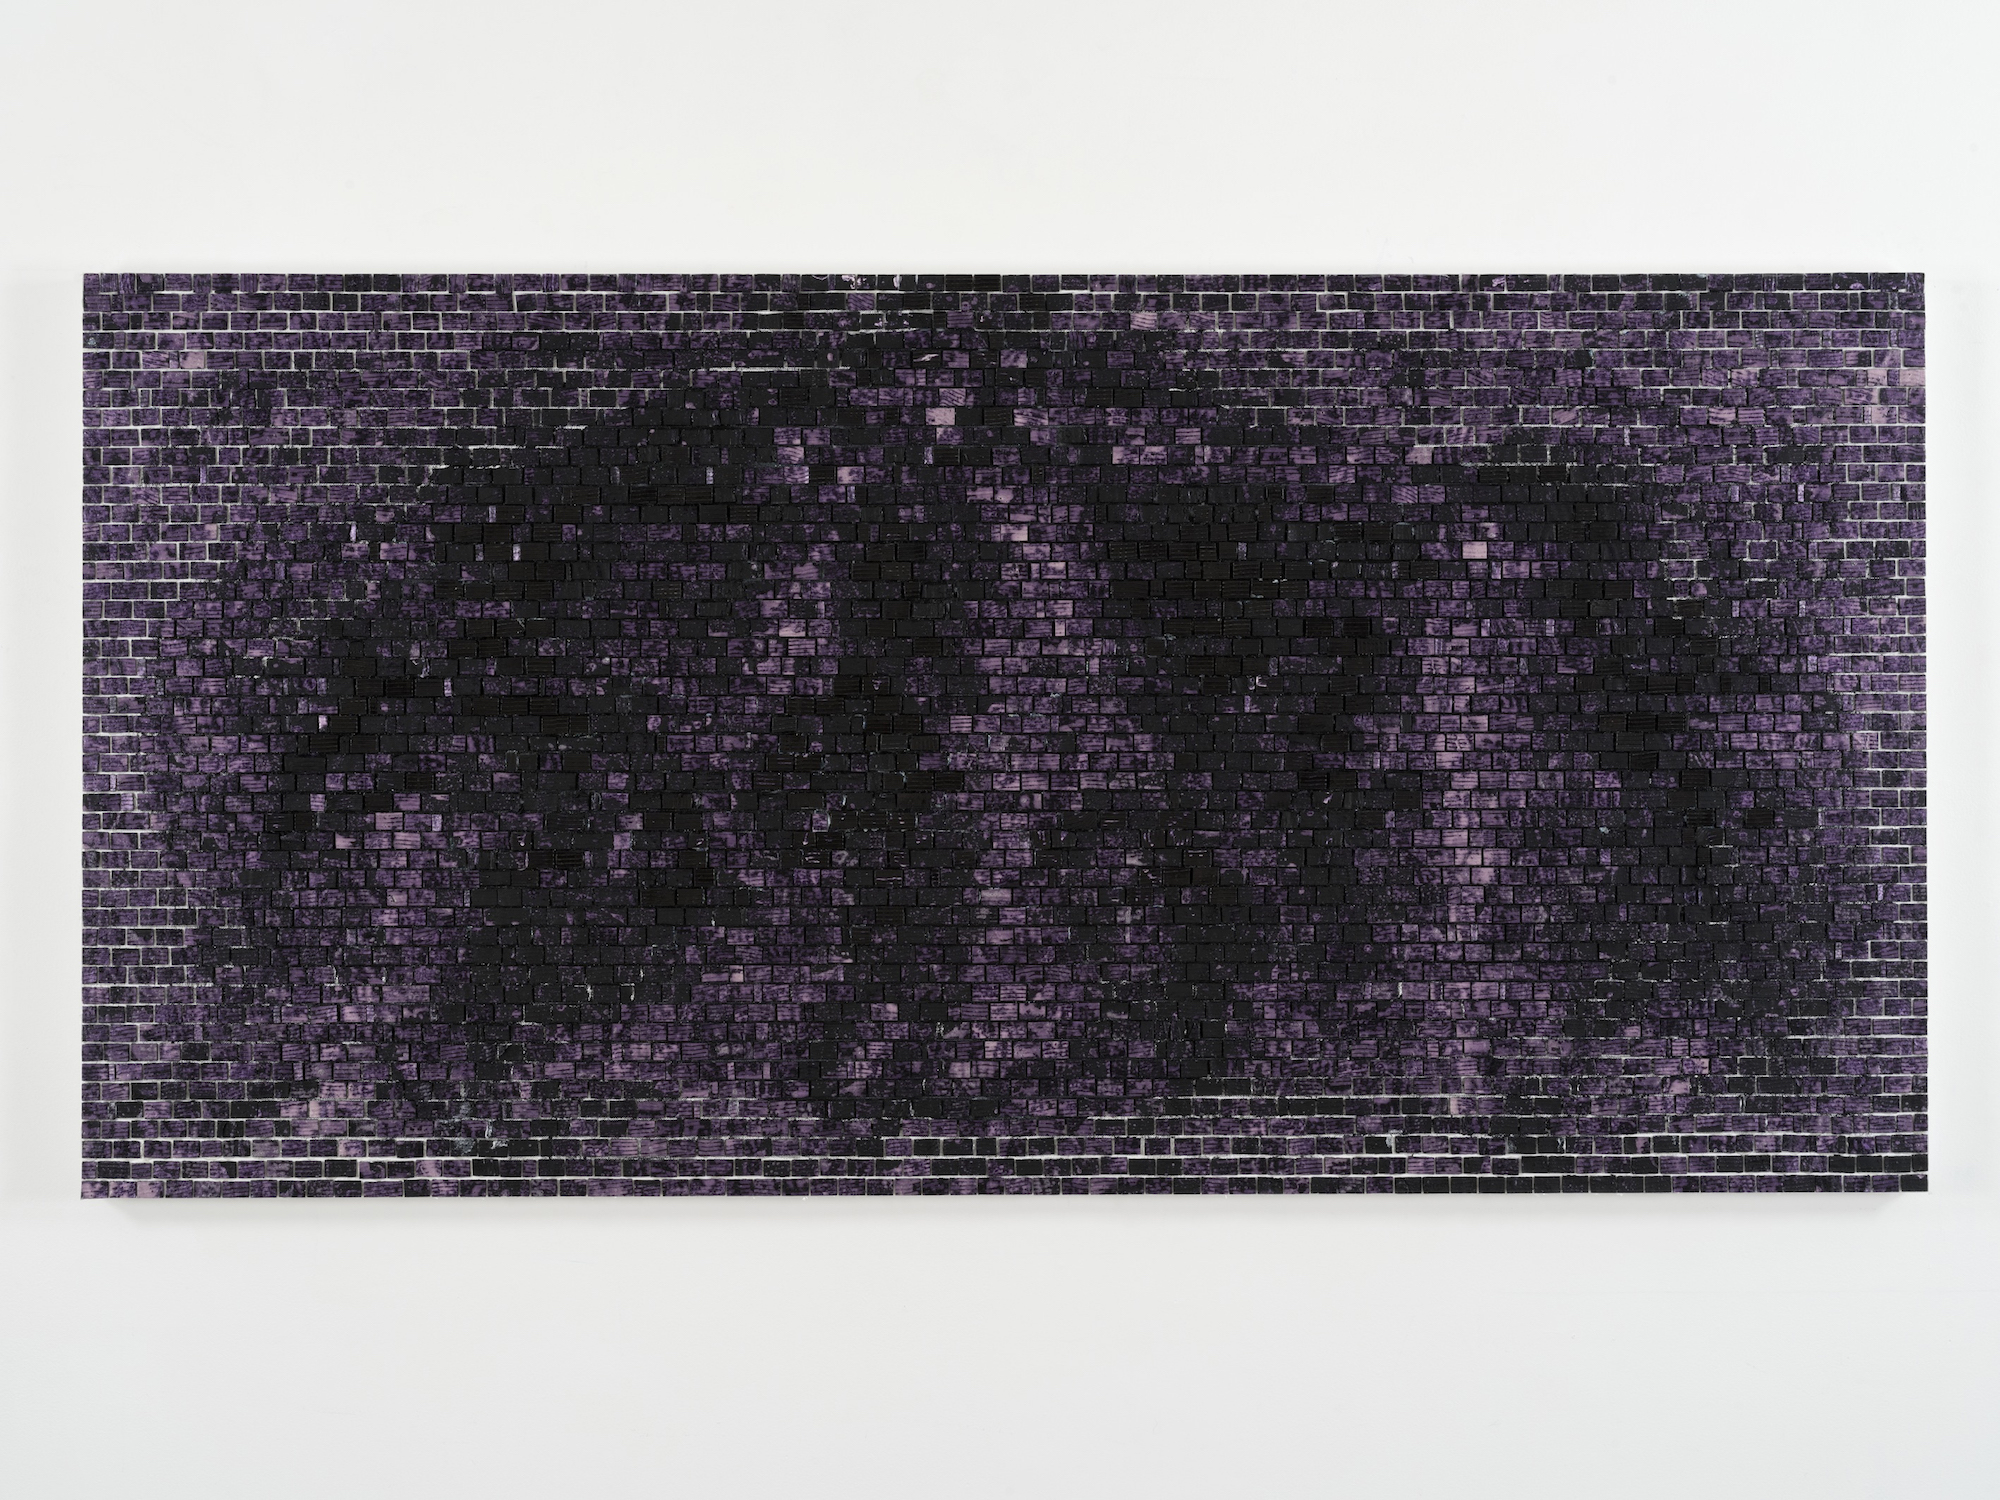 Simple Quantum Wall III The Geometry of Being An Octopus acrylic on canvas u x u Jack Whitten courtesy the artist and Hauser u Wirth